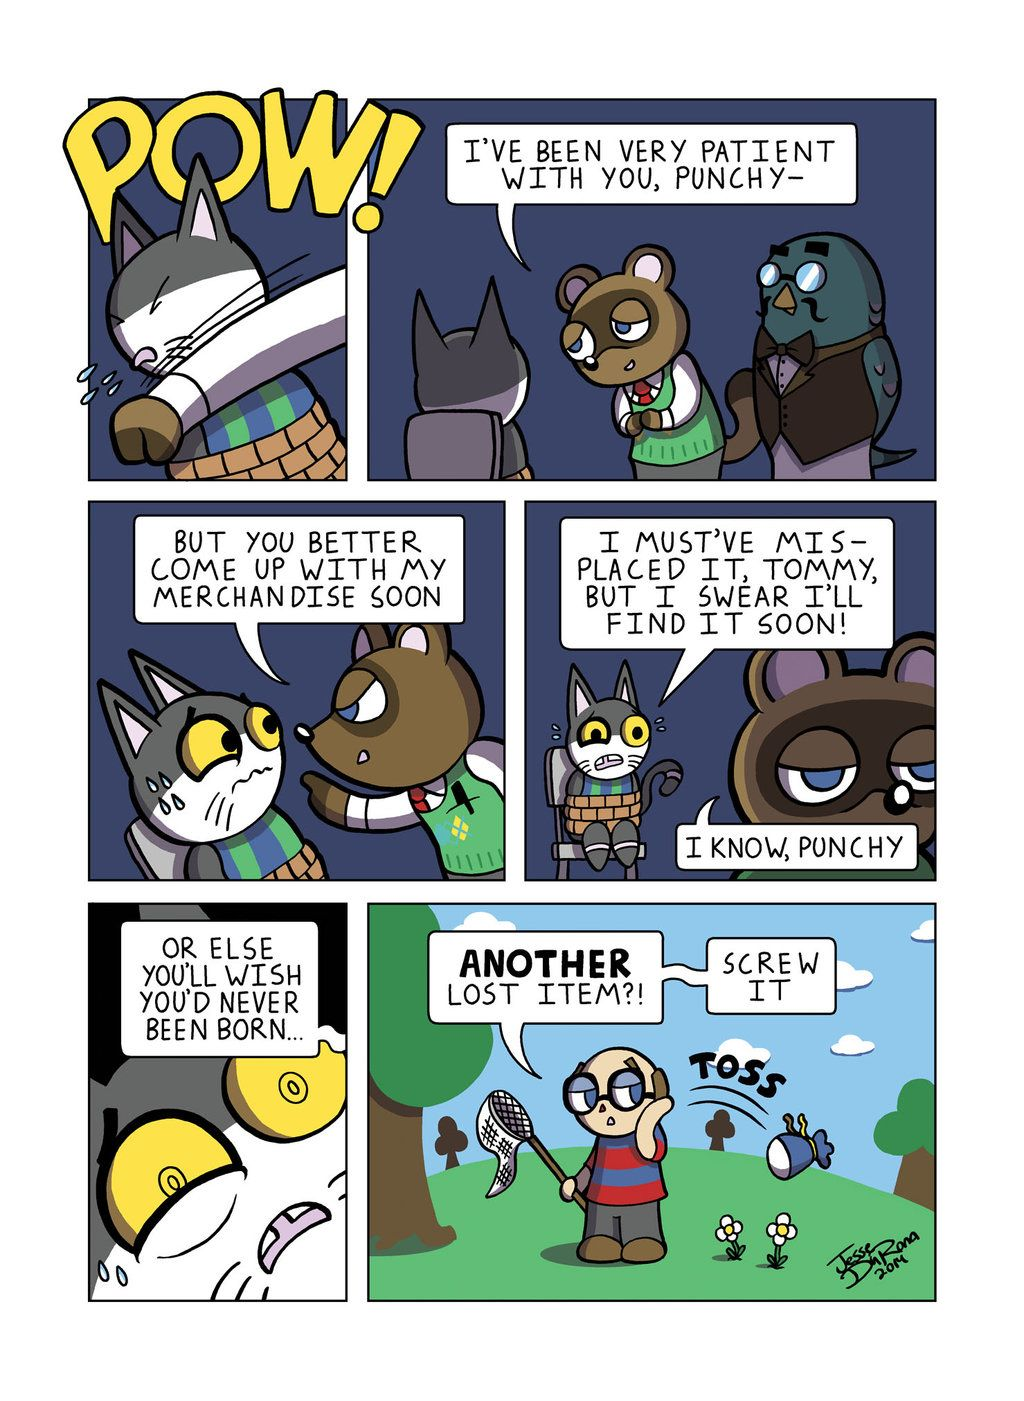 Pin By Crème Brulee On Animal Crossing Fan Art Animal Crossing Fan Art Comic Animal Animal Crossing Characters